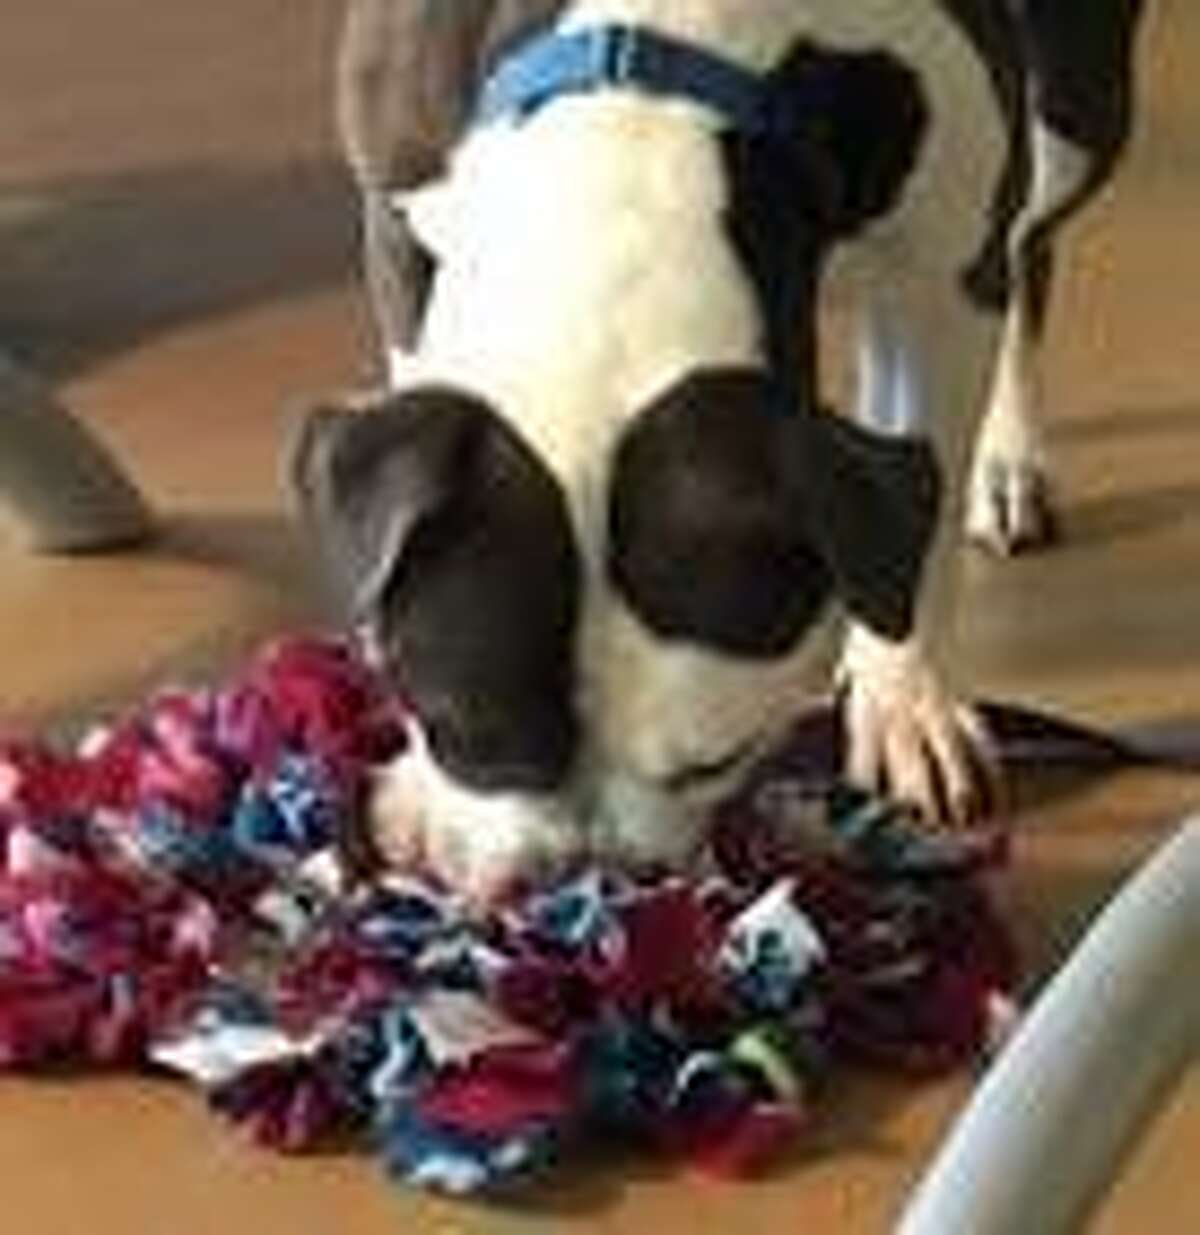 Mohawk Hudson Humane Society offered tips on helping pets deal with problem fireworks noises, which have been a problem in June 2020 as the pandemic continues and people are stuck at home. One recommendation was to provide what is called a snuffle mat, which is loaded with dry kibble and encourages their natural foraging instinct.